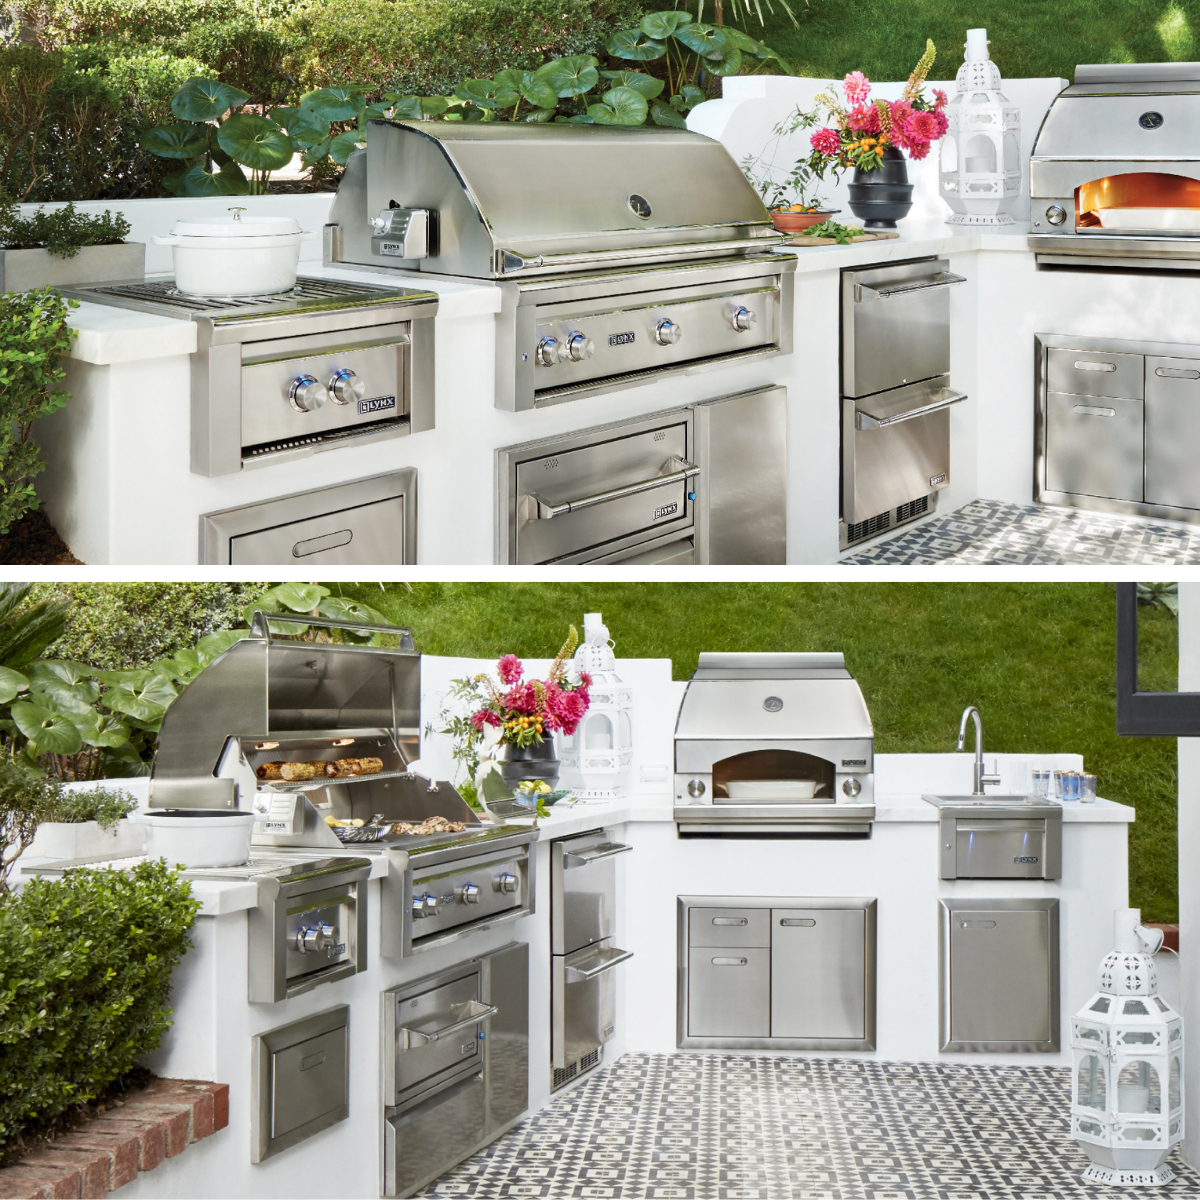 Find Lynx Grills And Accessories At Milcarsky S Appliance Centre In 2020 Outdoor Kitchen Appliances Outdoor Kitchen Outdoor Appliances